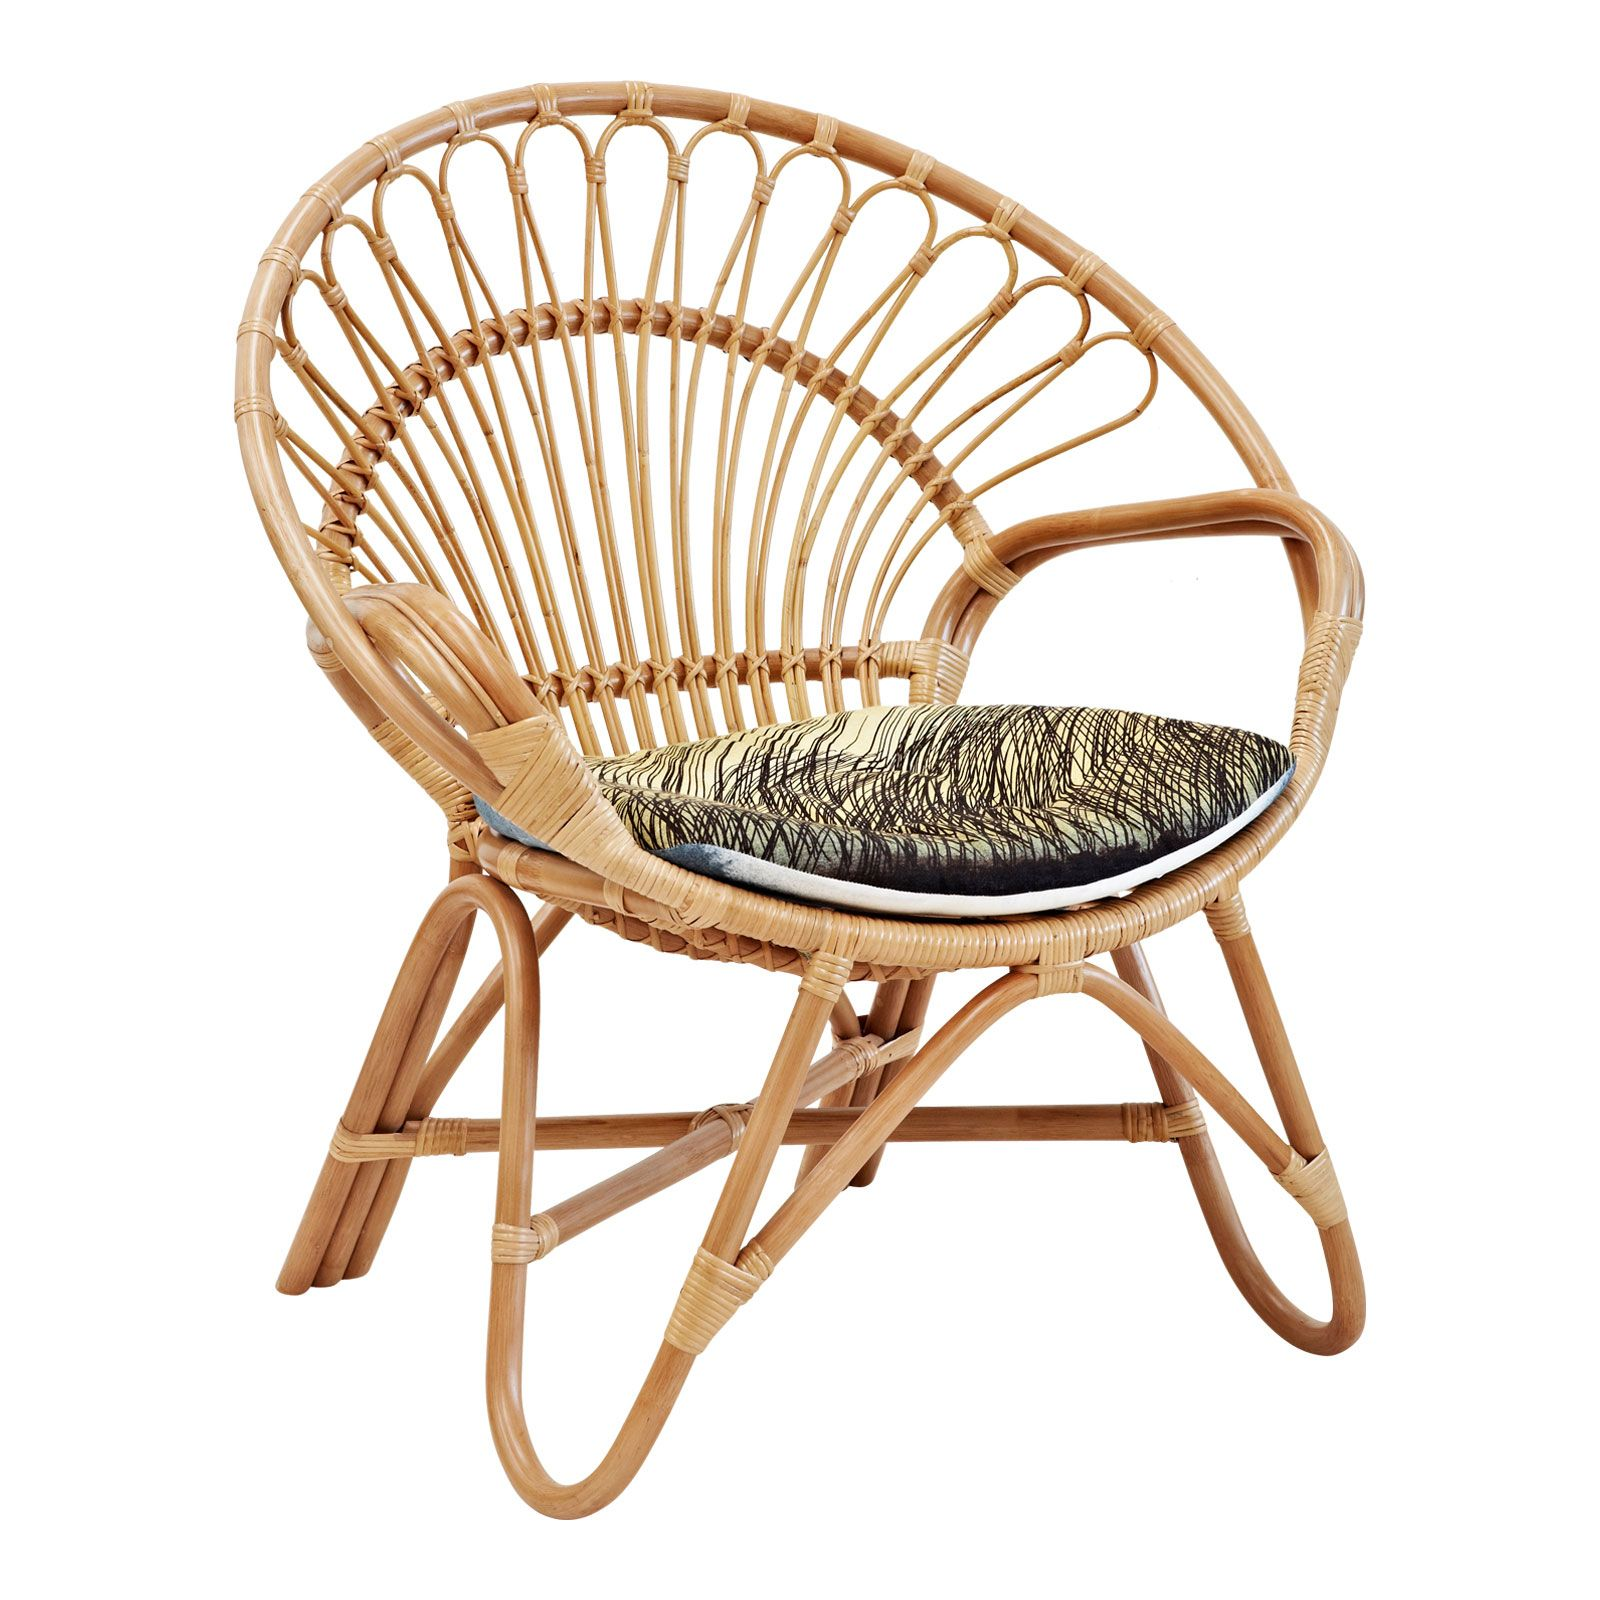 Appealing Rattan Chair For Outdoor Or Indoor Furniture